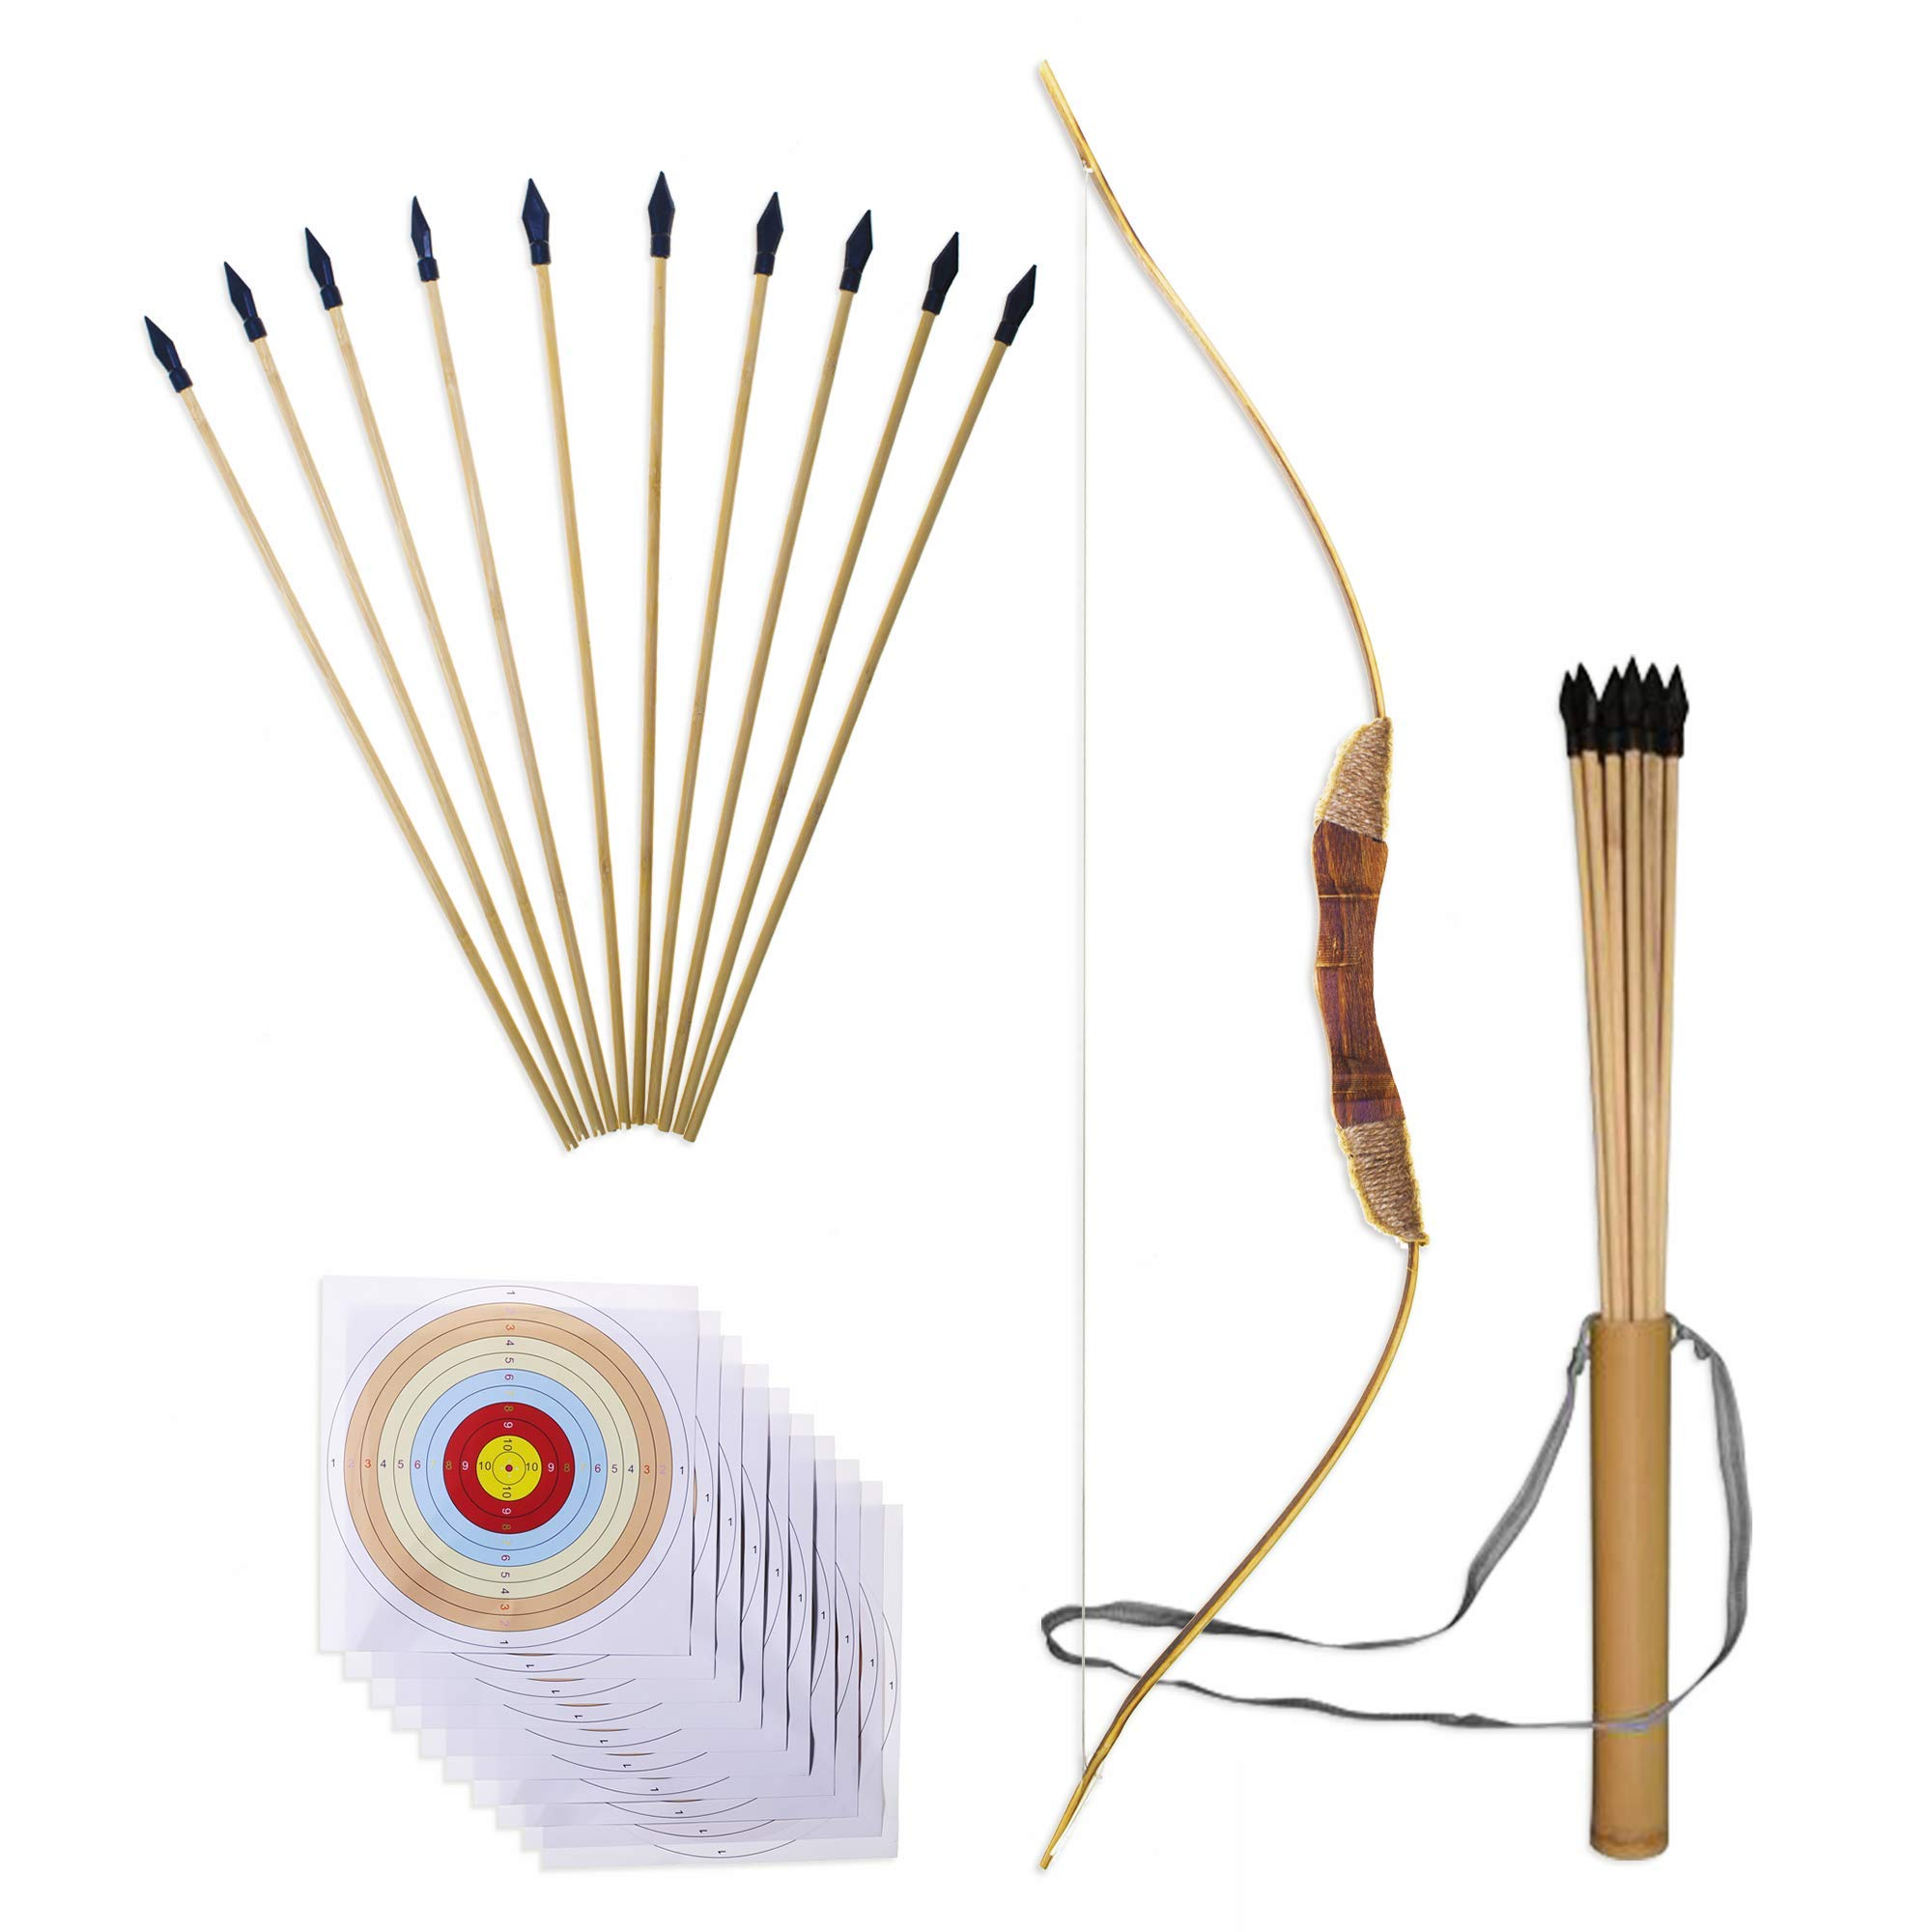 """UteCiA Complete Archery Set For Kids & Beginners – 34"""" Handcrafted Wooden Bow, 10 - Pc 18"""" Safety Rubber Tip Arrow Pack, Quiver, 10 Target Sheets – Outdoor and Indoor Shooting Toy For Aspiring Archers"""